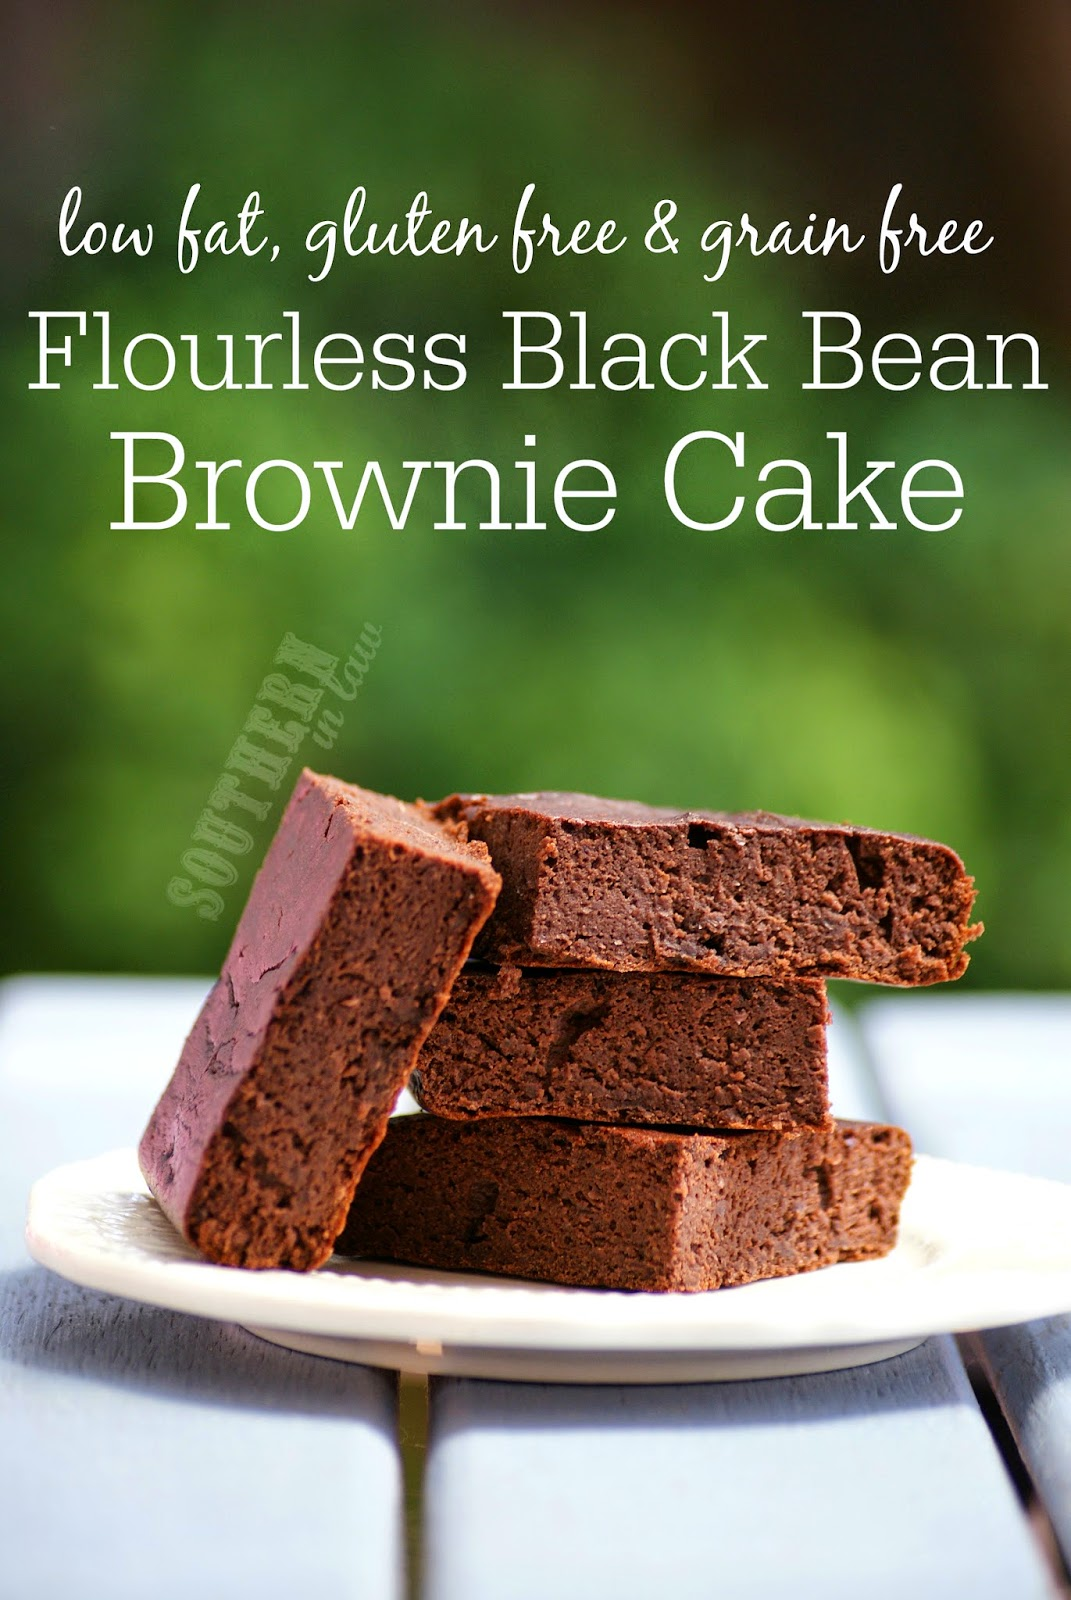 Healthy Flourless Black Bean Brownie Cake Recipe | low fat, gluten free, grain free, flourless, refined sugar free, clean eating friendly, low calorie brownie recipe